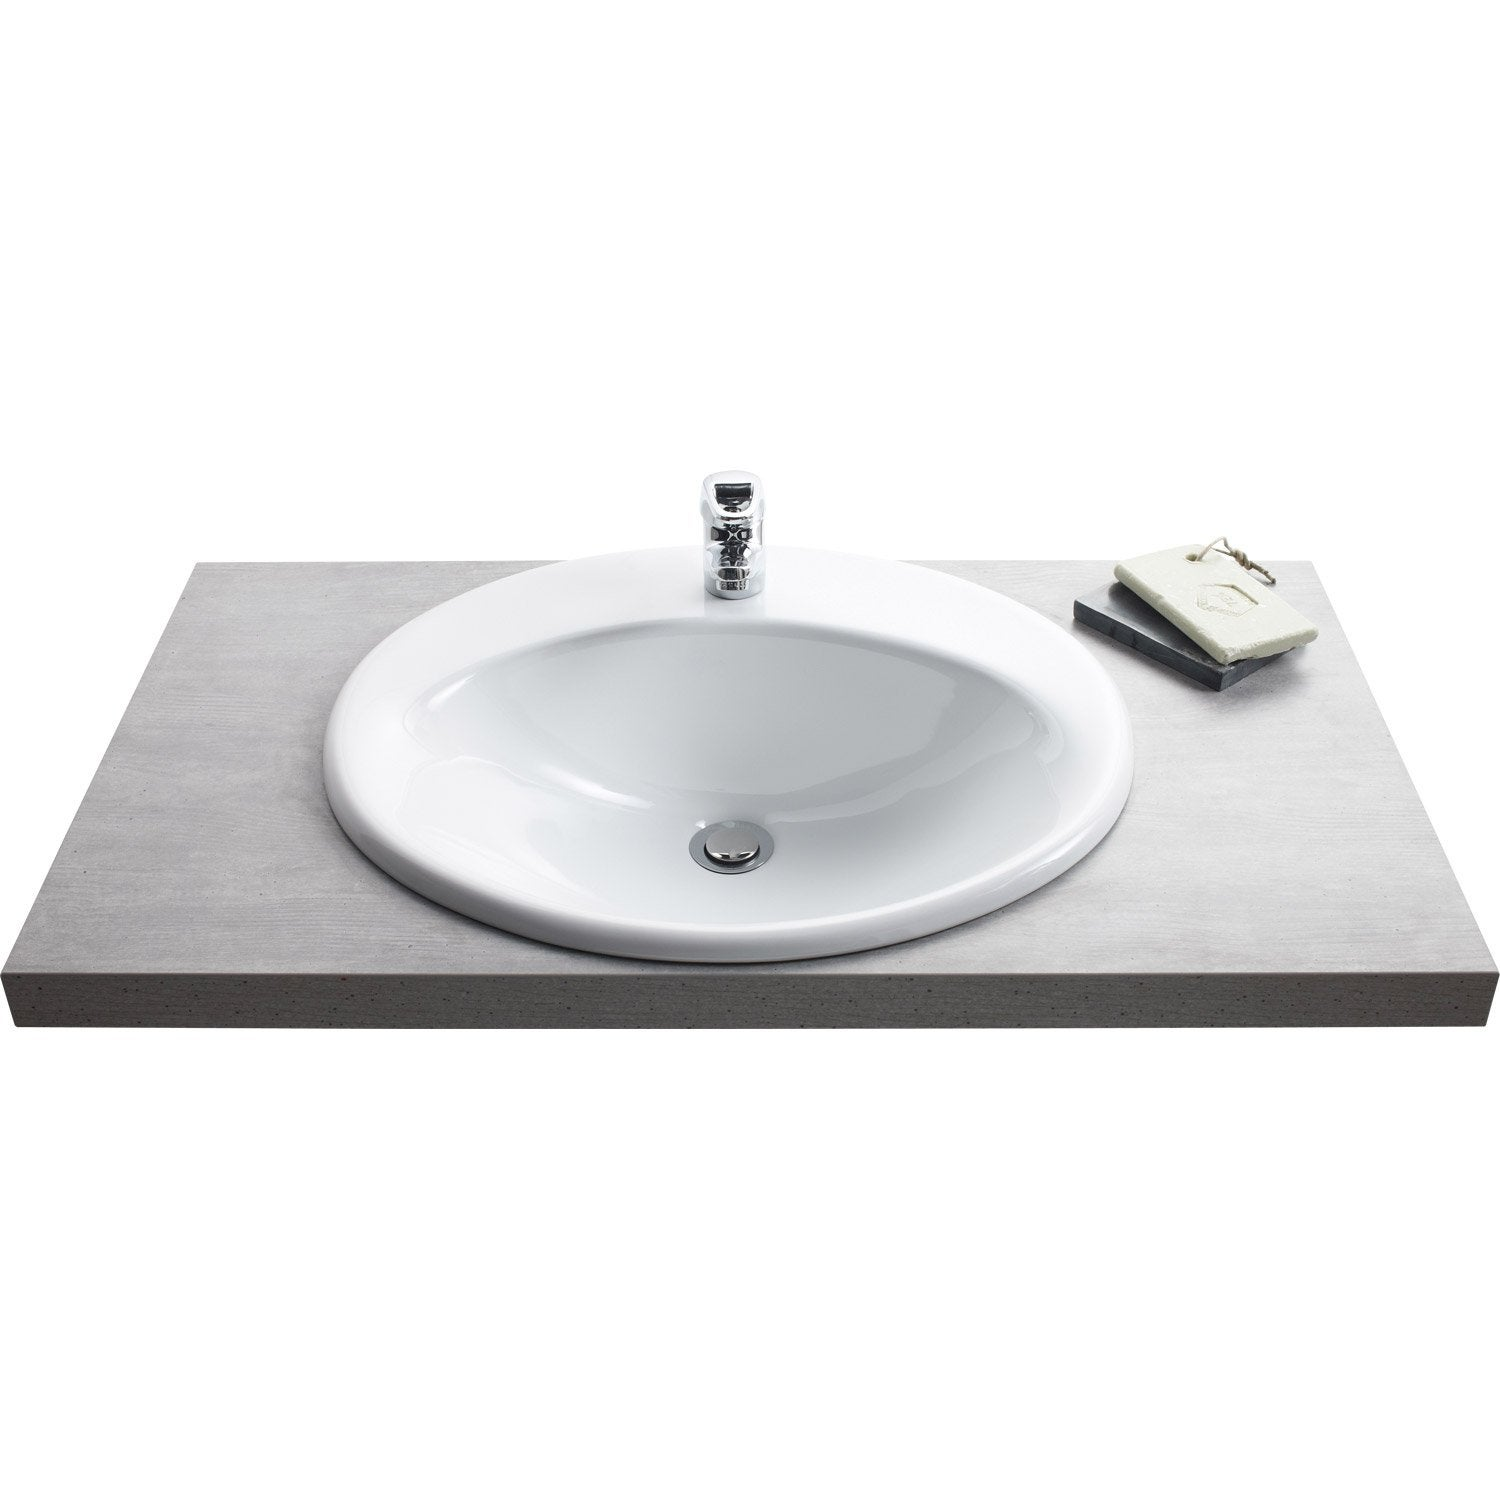 Vasque encastrer c ramique x cm blanc olympe for Vasque salle de bain leroy merlin